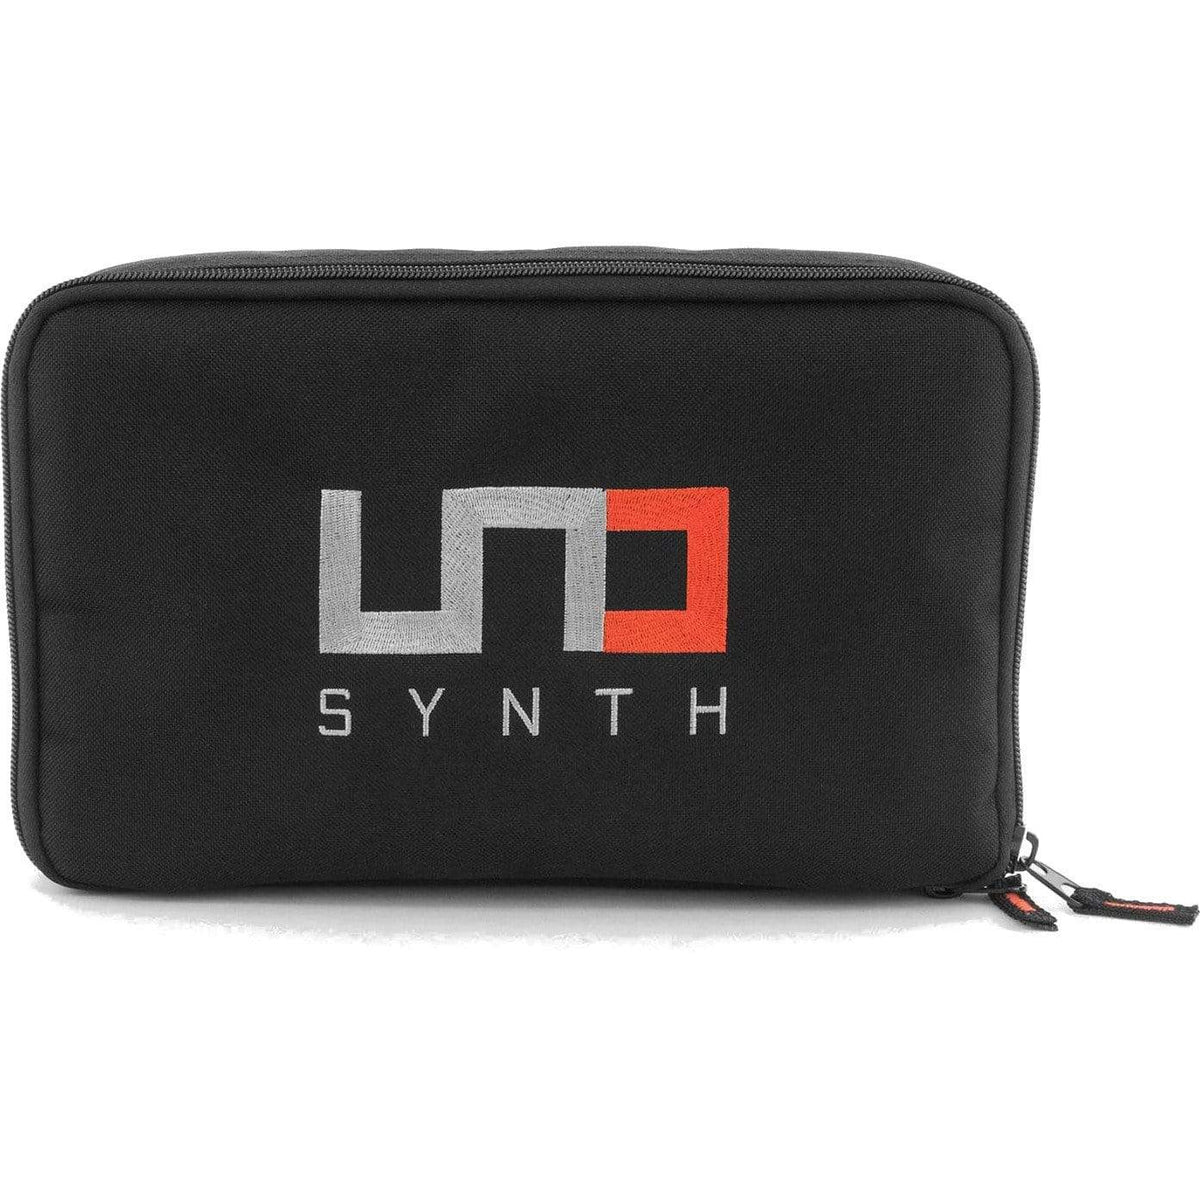 IK Multimedia Travel Case for UNO Synth